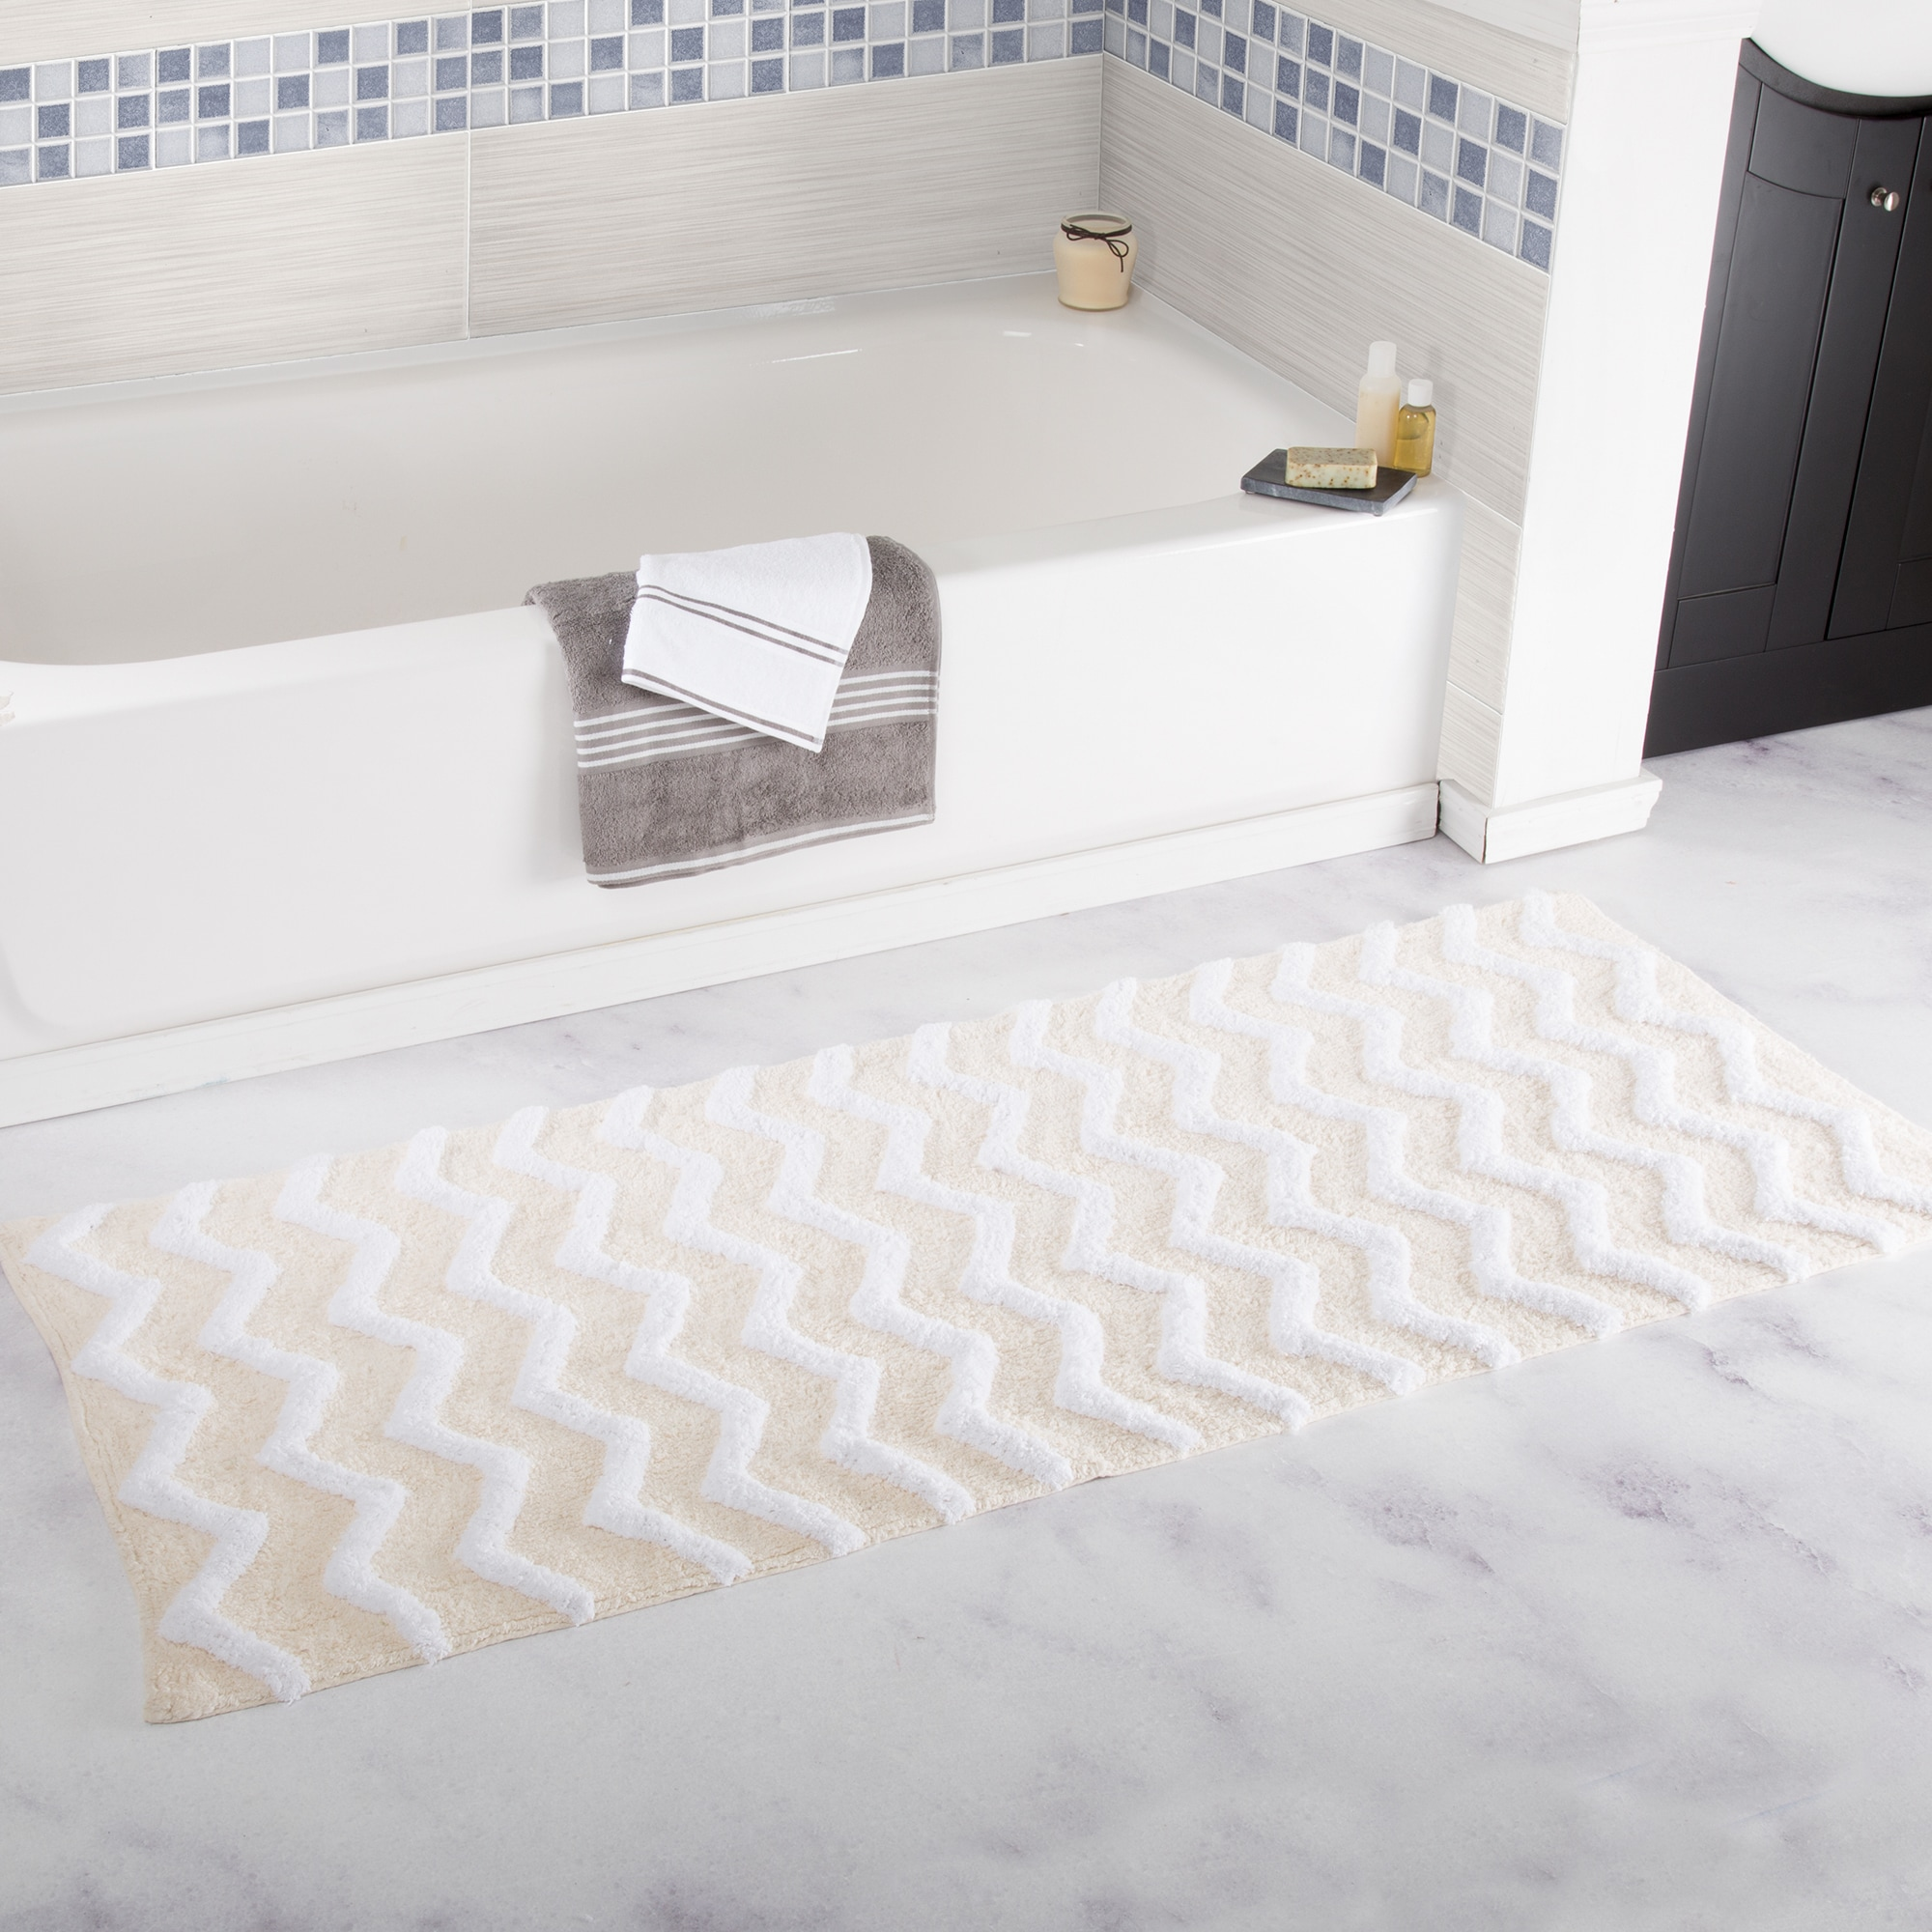 Bathroom Rugs Clearance Bath Mats Rugs Clearance Liquidation Find Great Bath